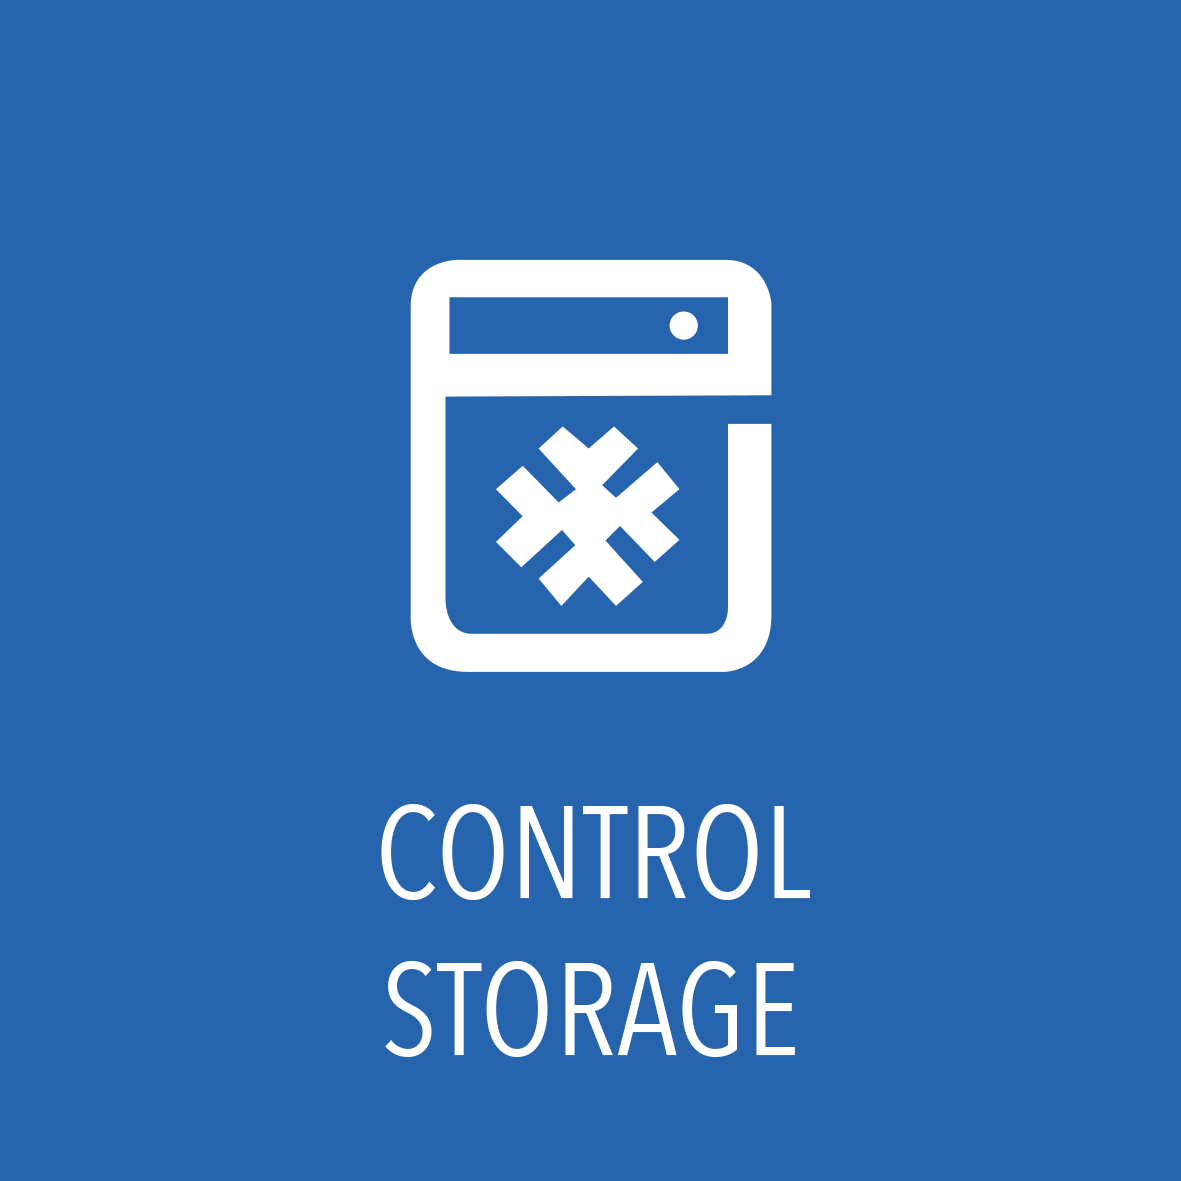 CONTROL STORAGE.png